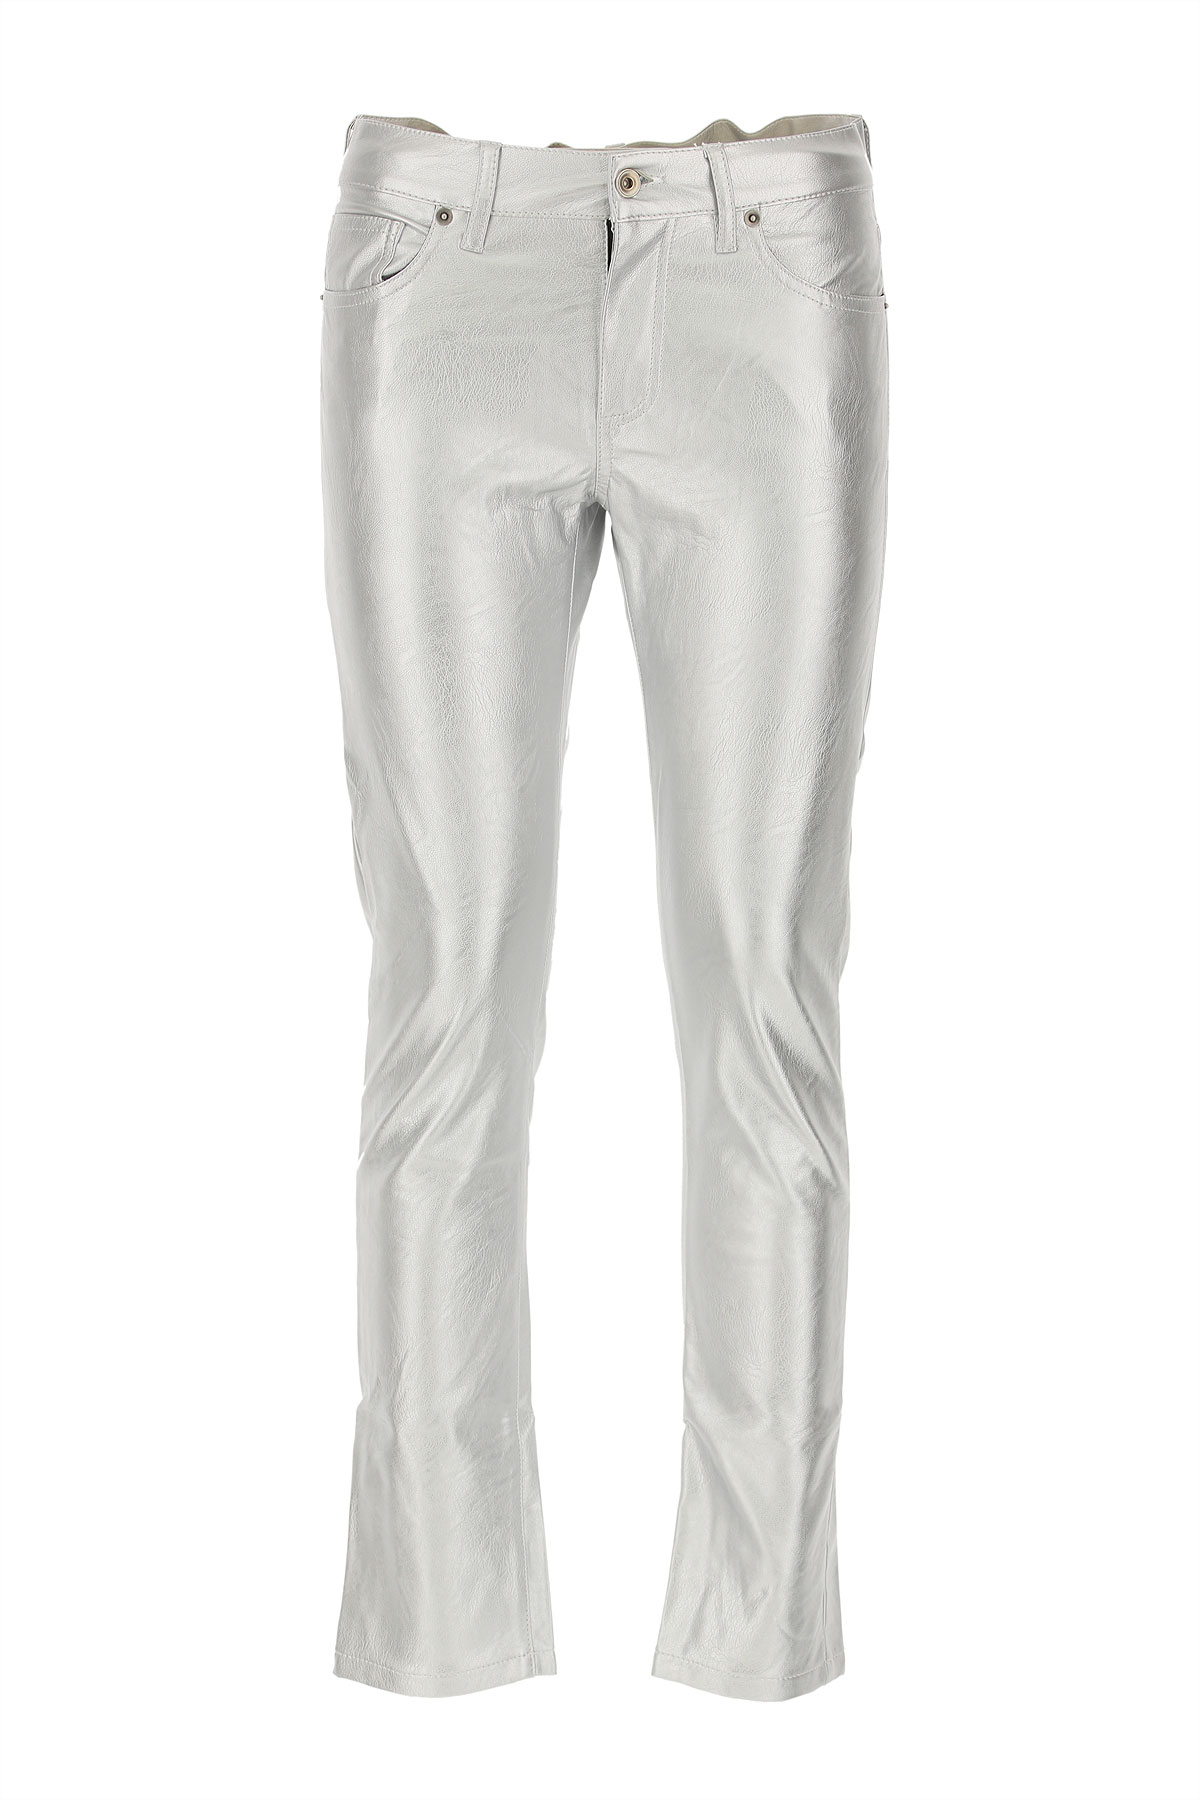 Image of Laneus Pants for Women, Silver, polyester, 2017, 26 30